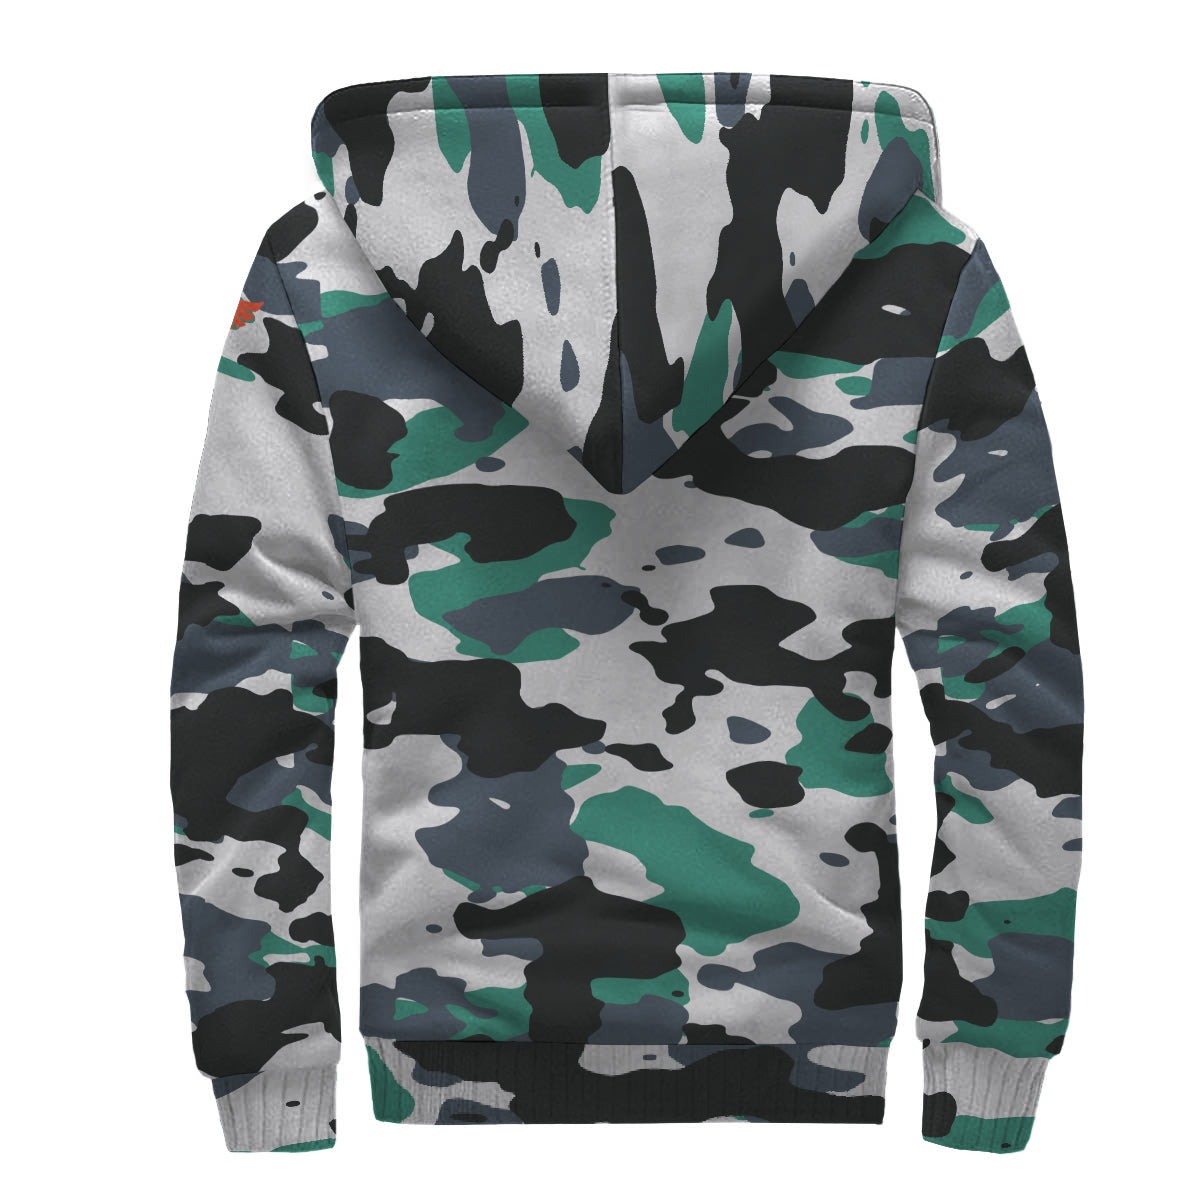 Find Your Coast White Camo Sherpa Lined Zip Up Hoodie - Find Your Coast Supply Co.